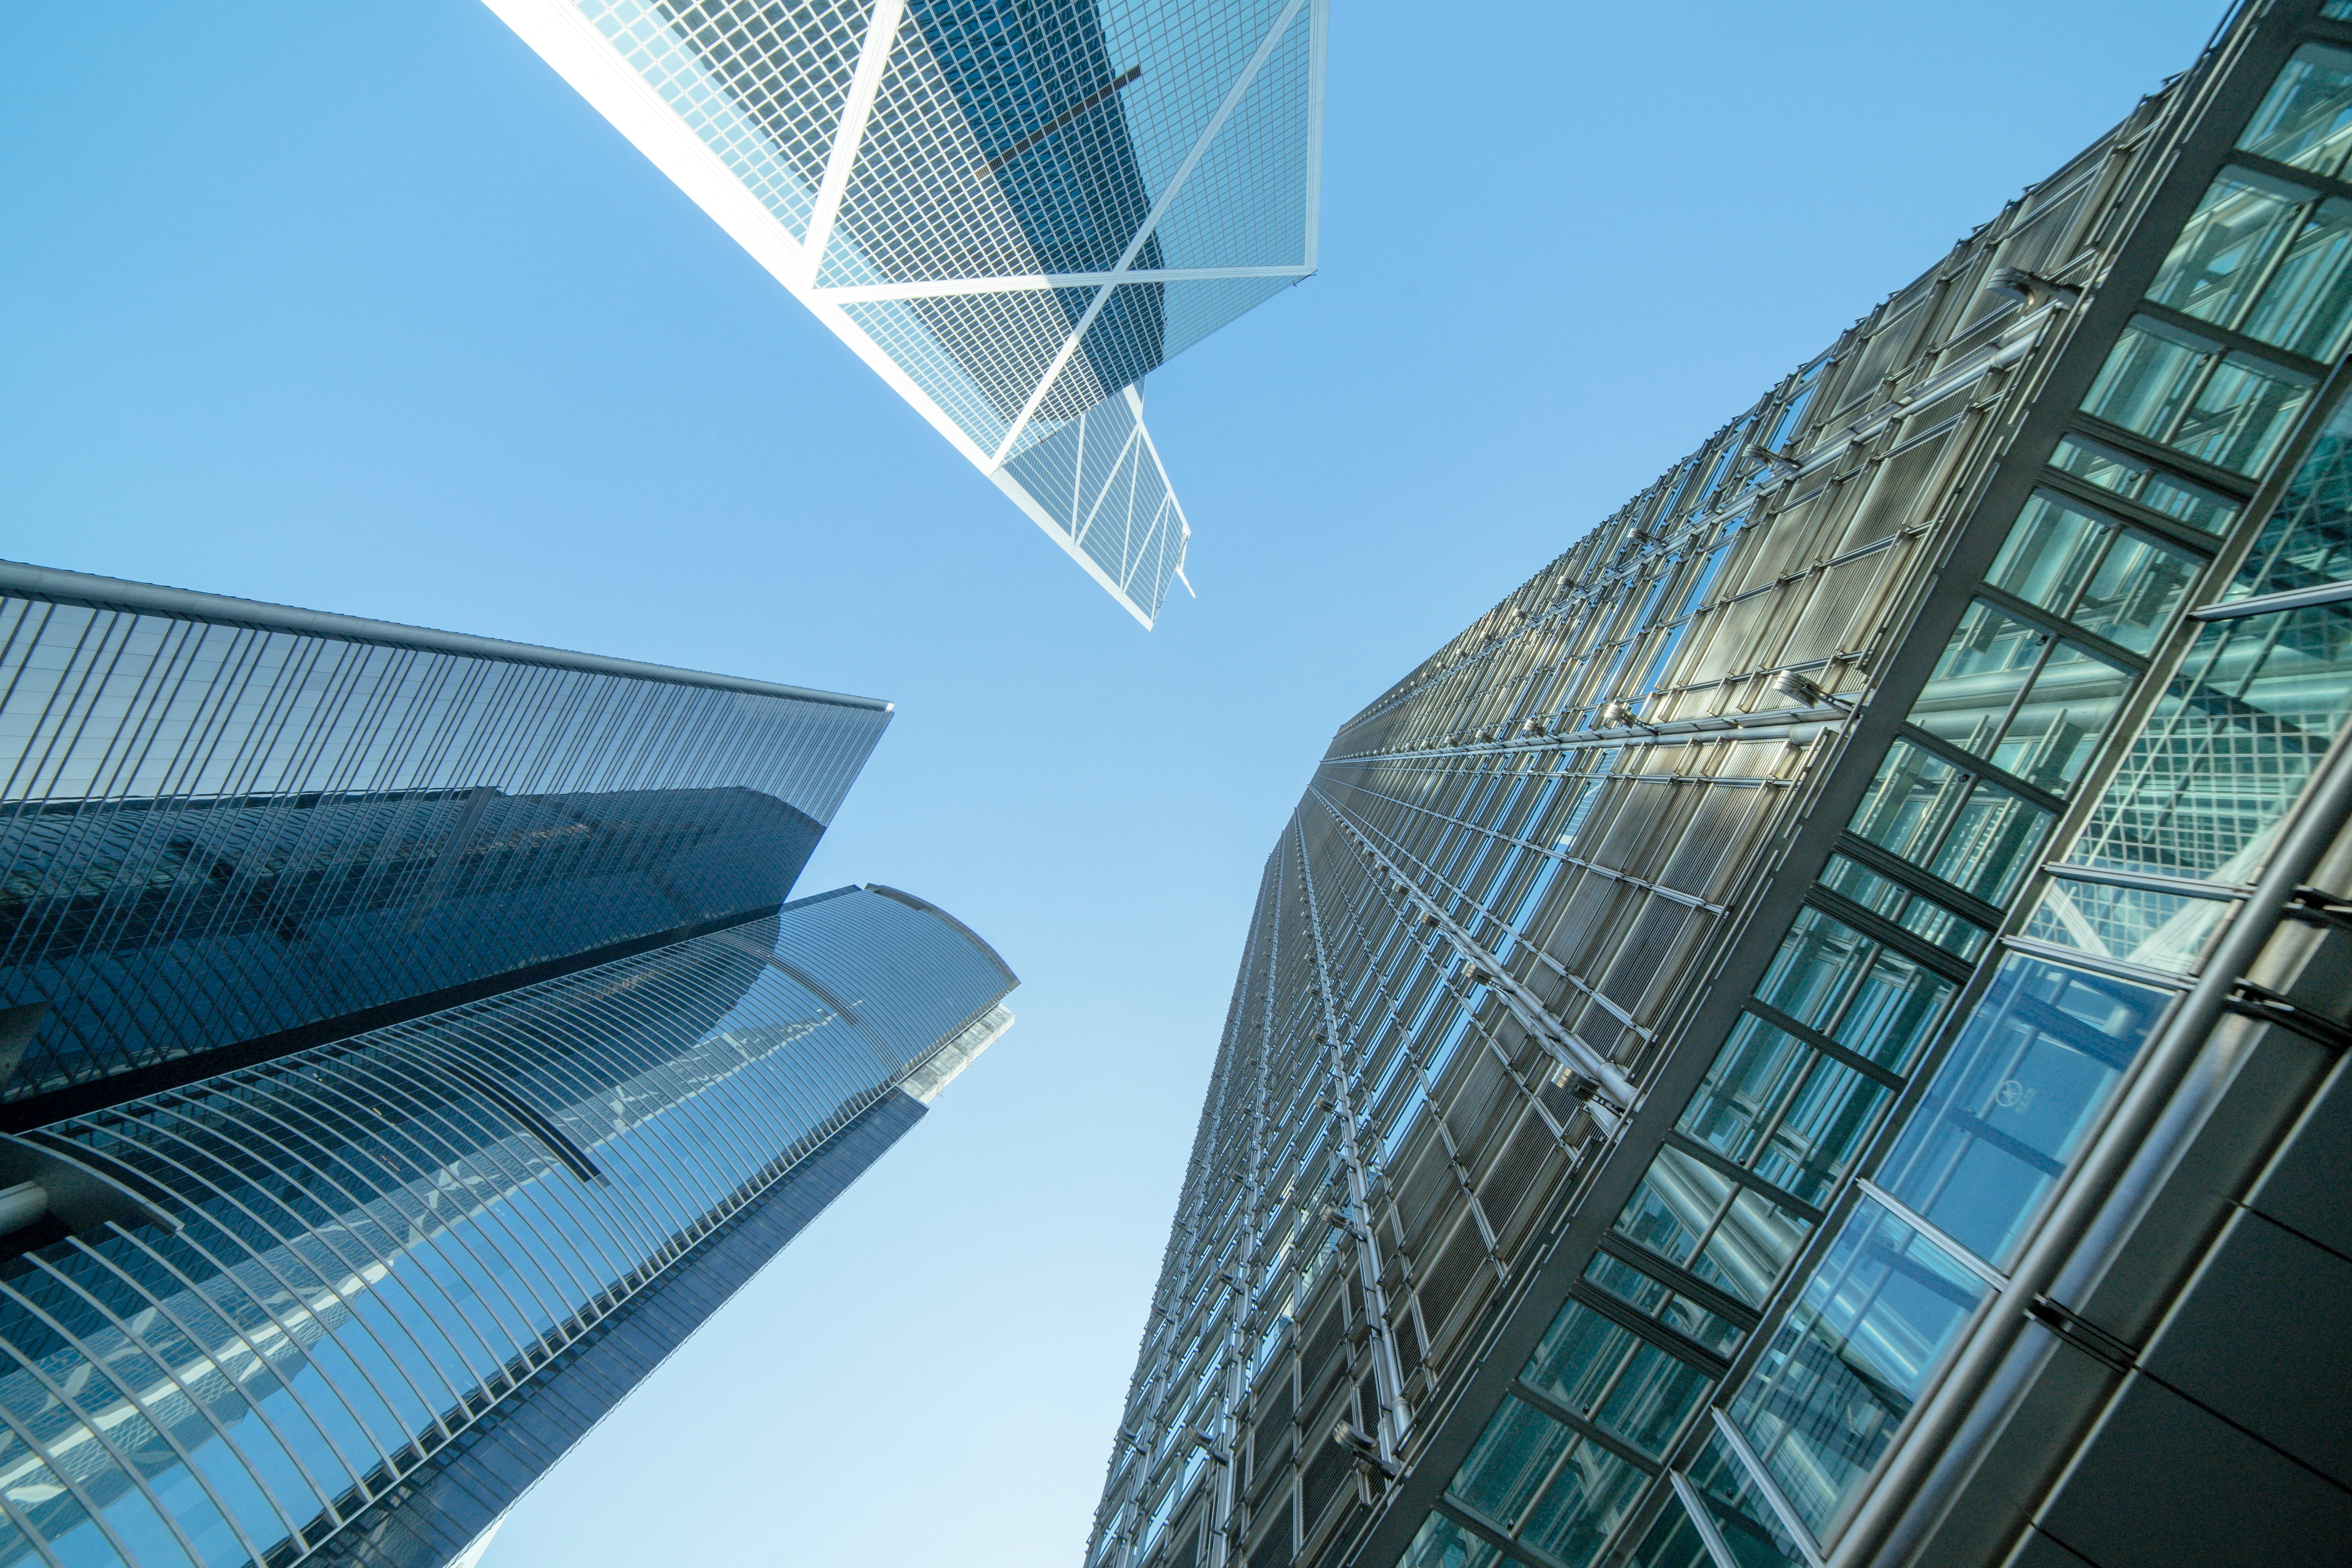 low-angle-photography-of-buildings-under-blue-and-white-sky-998499